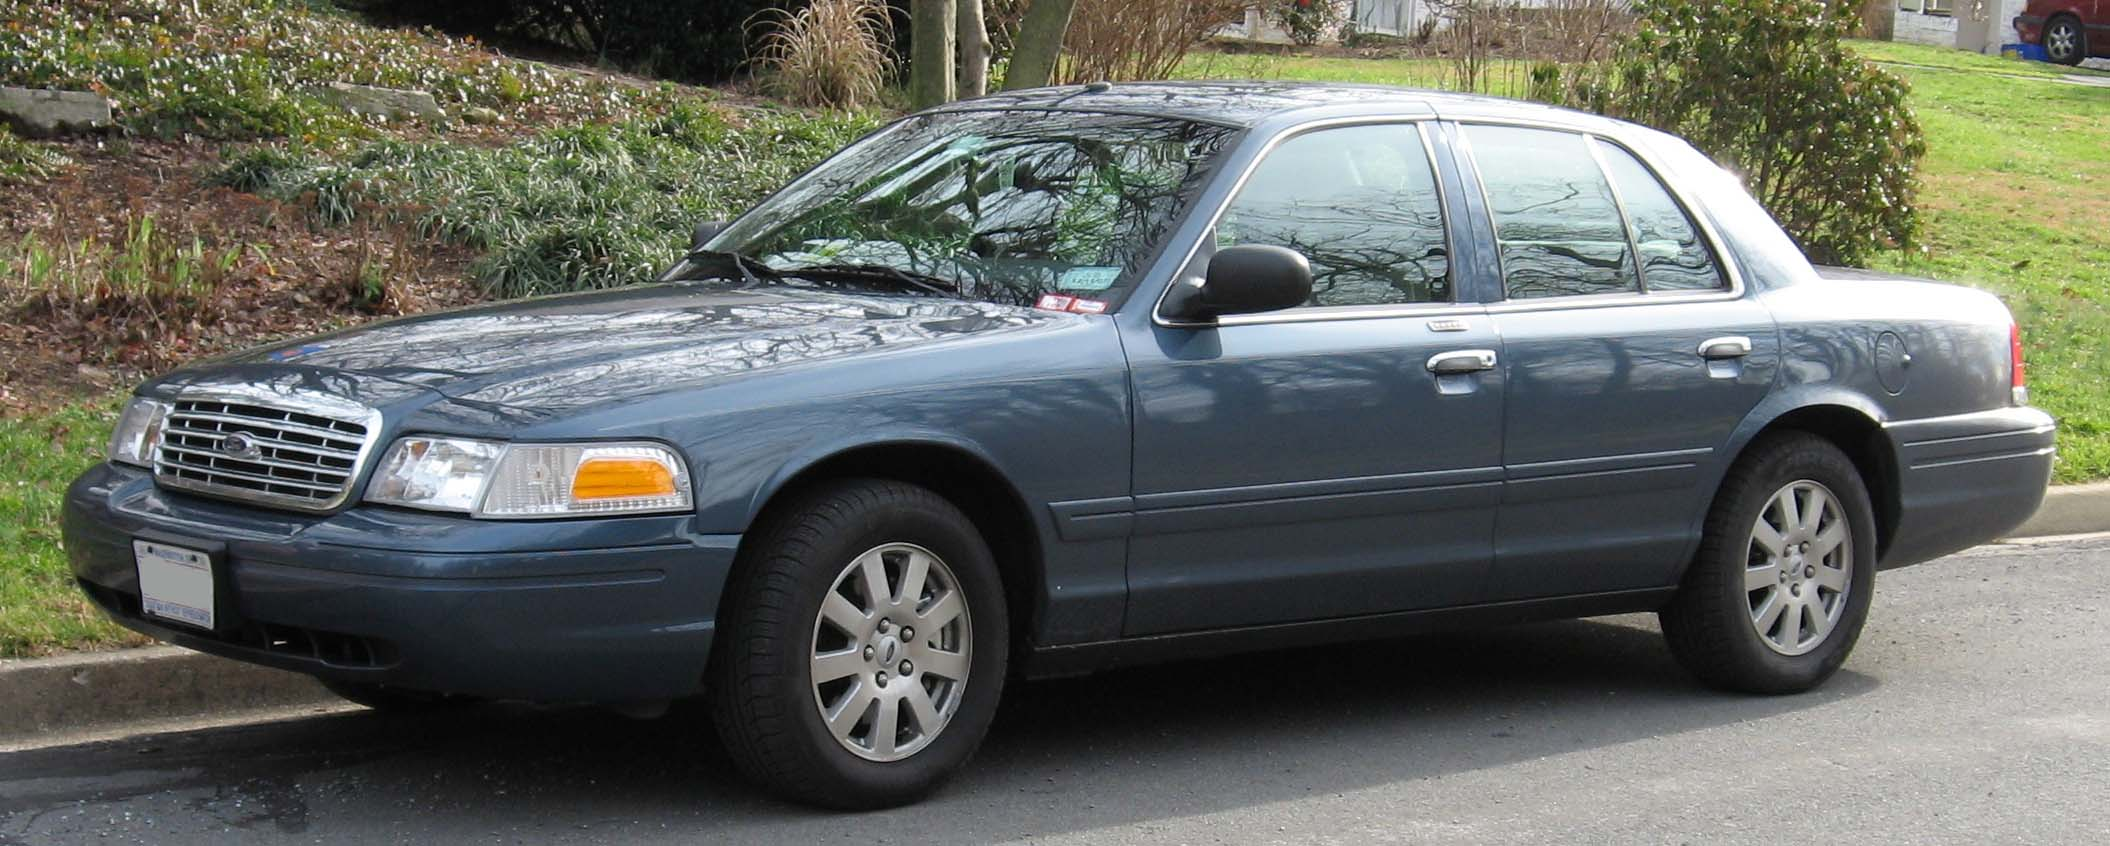 1998 Ford Crown Victoria #15